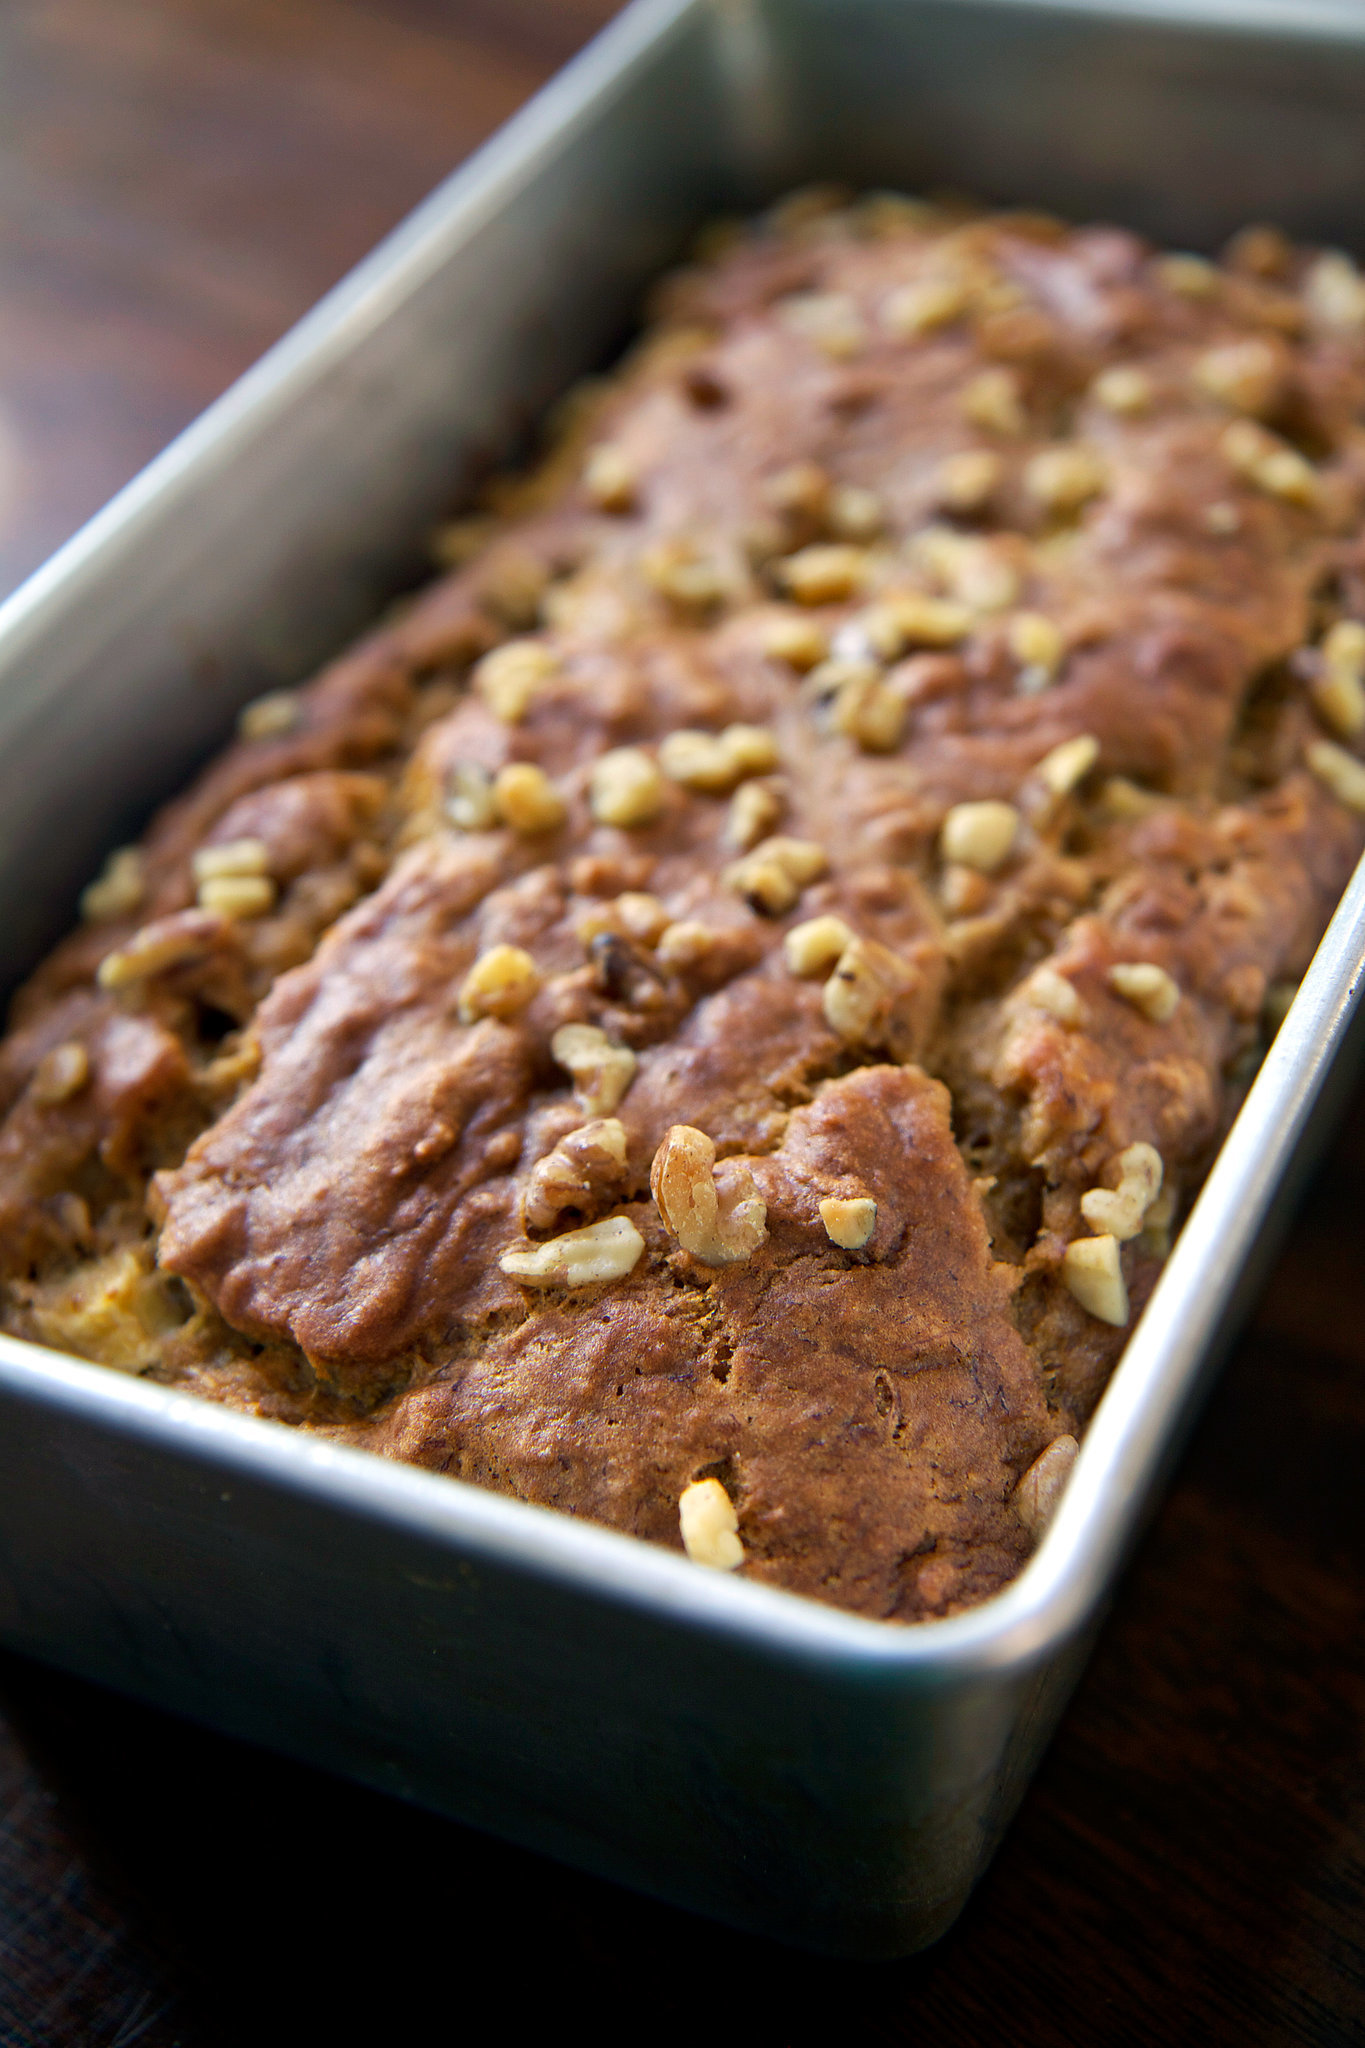 Bored With Plain Banana Bread Try This Seasonal Twist That S Under 150 Calories